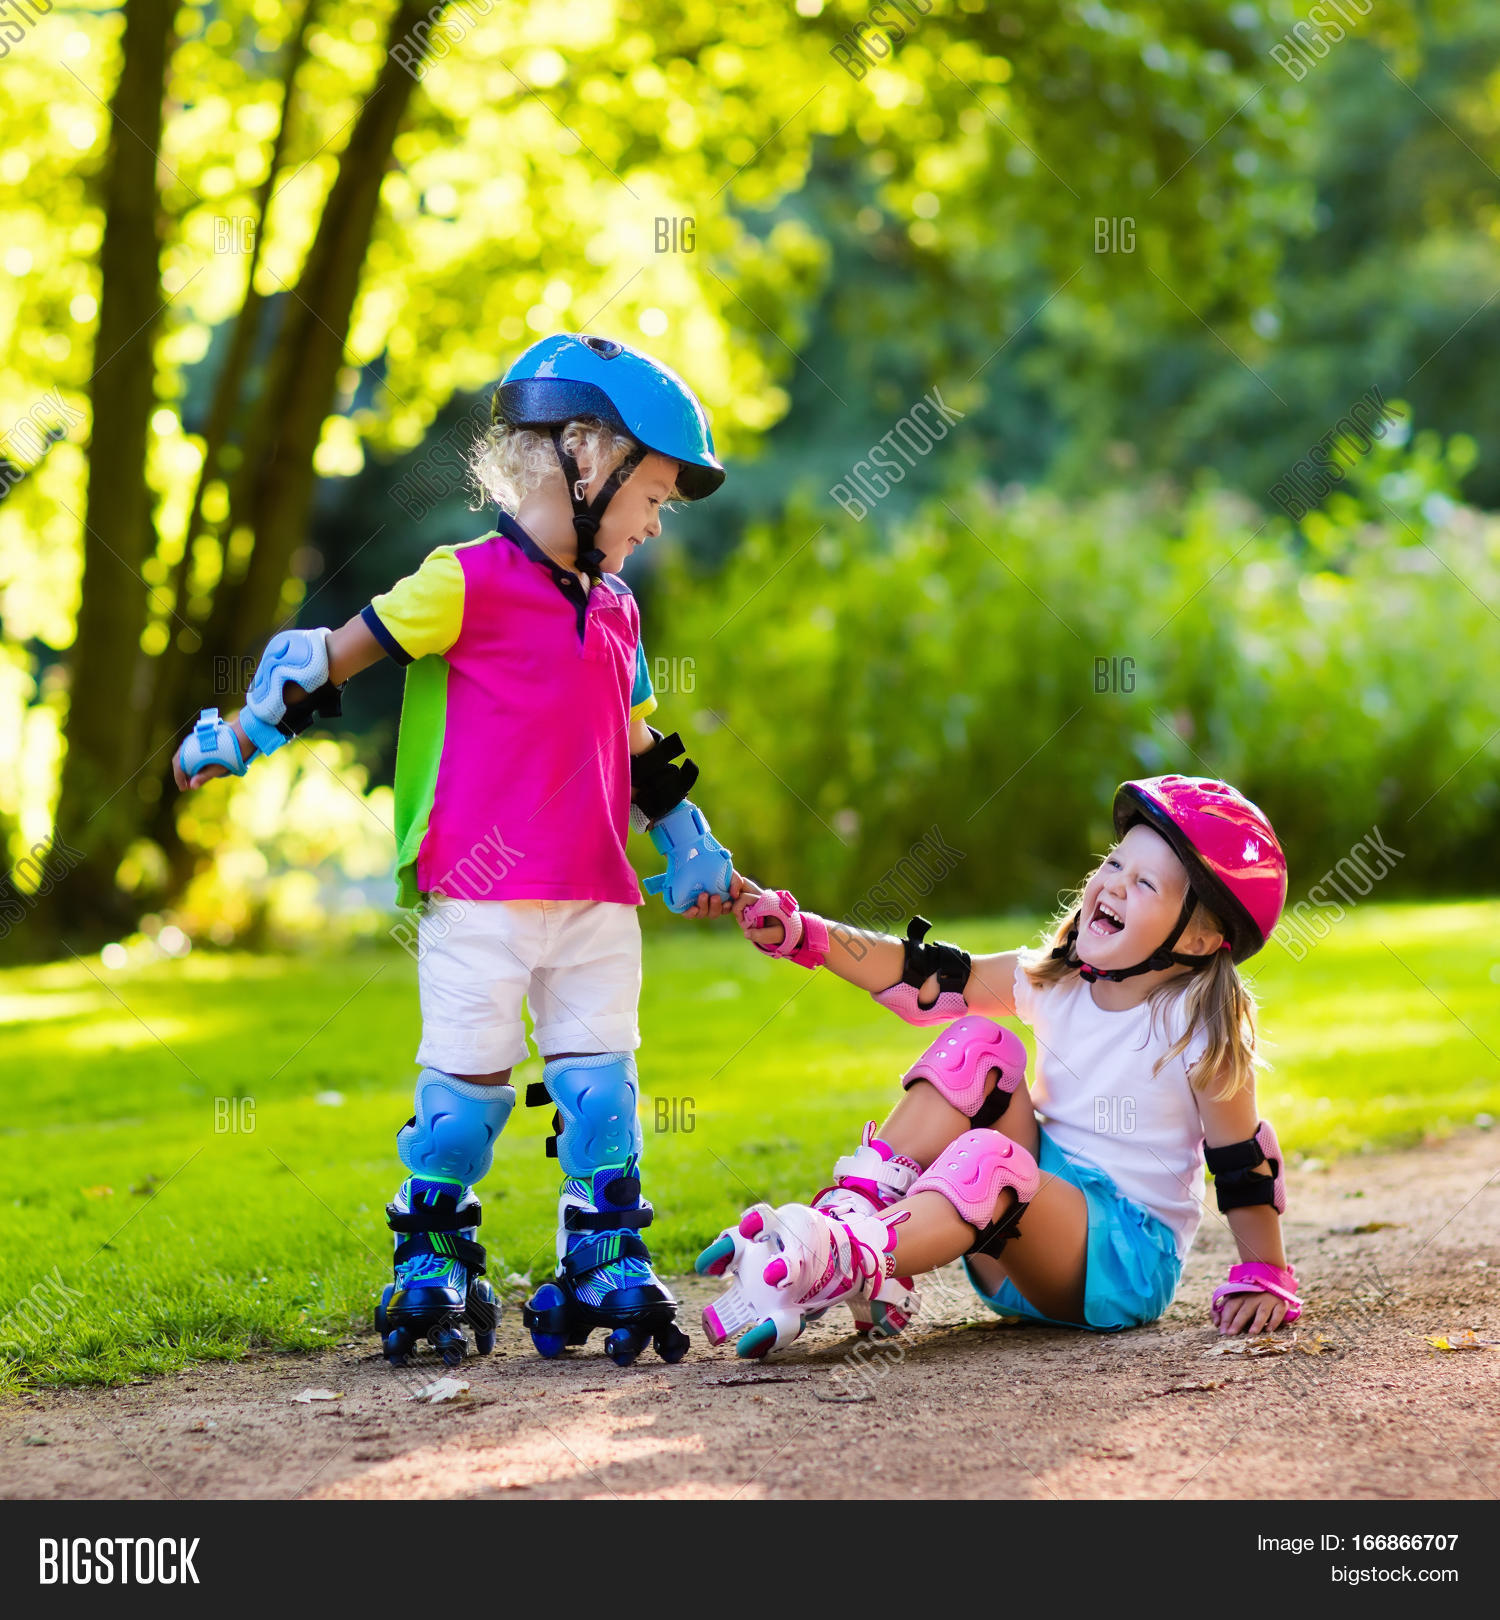 Helping Each Other: Girl Boy Learn Roller Skate Summer Image & Photo